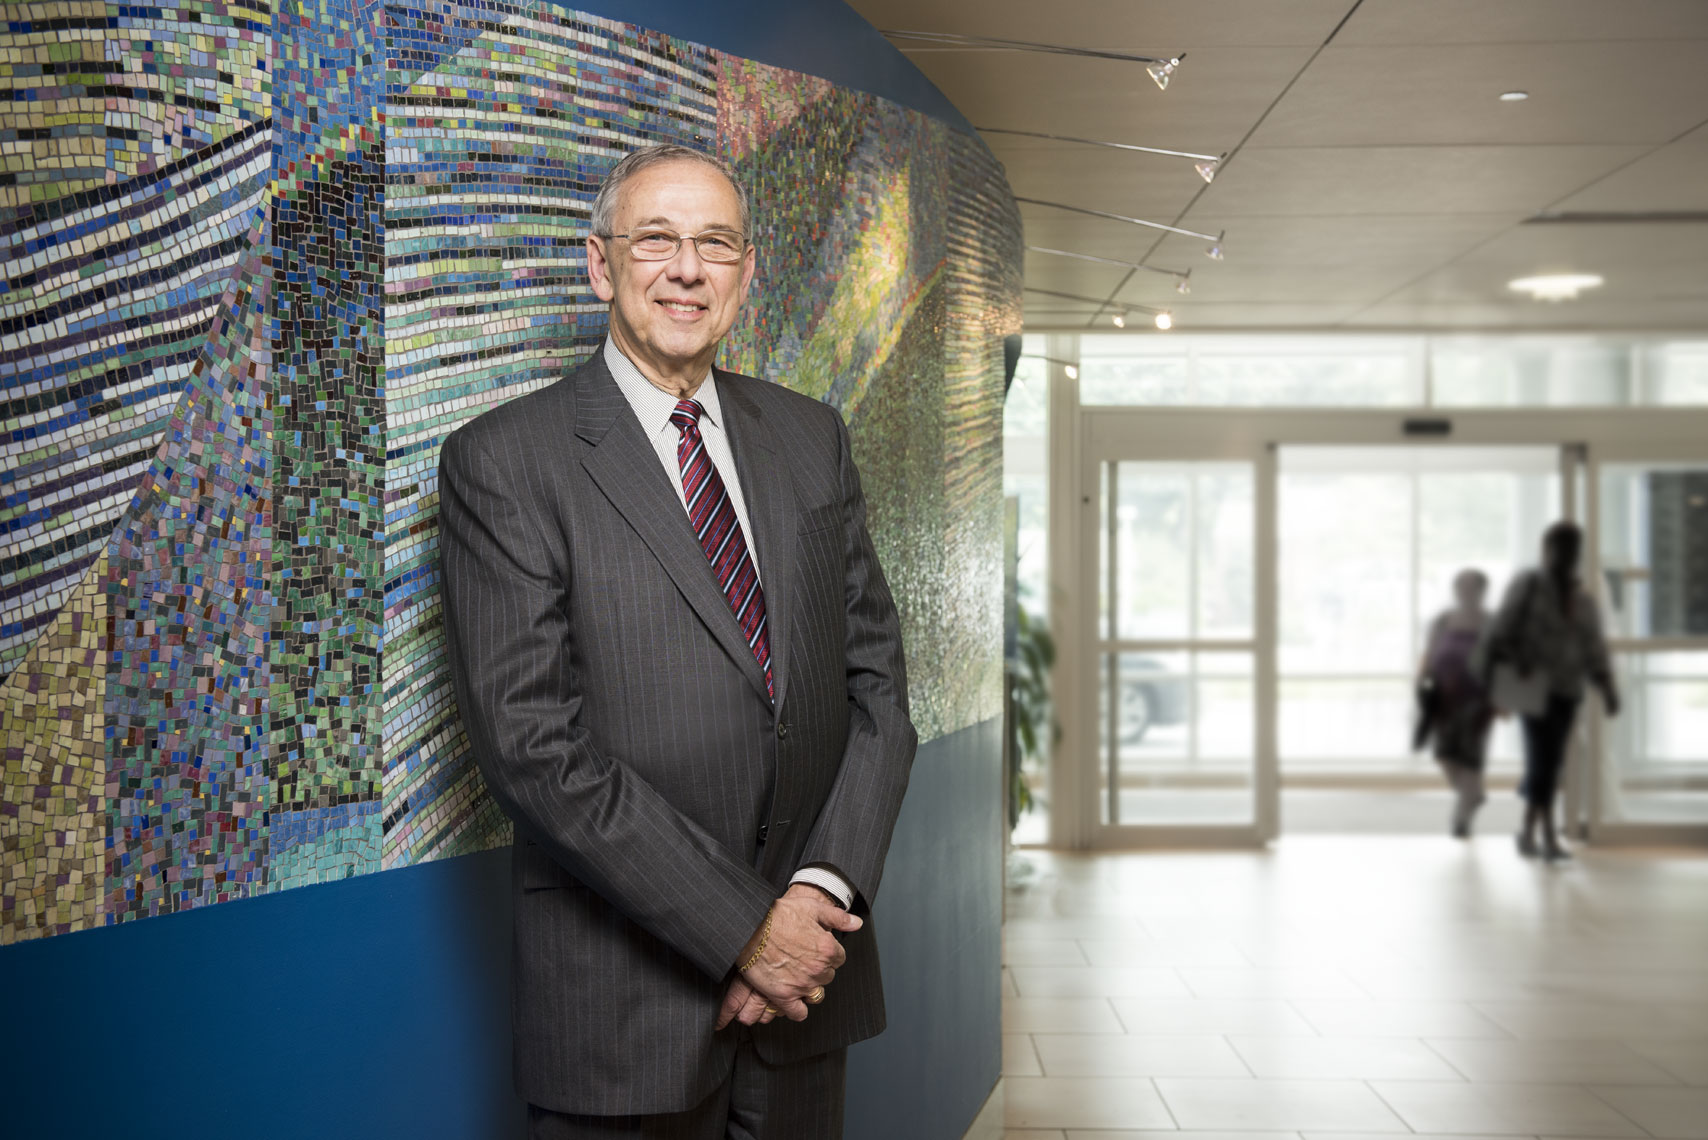 Dr. Ed Bersoff, by healthcare portrait photographer Mike Morgan